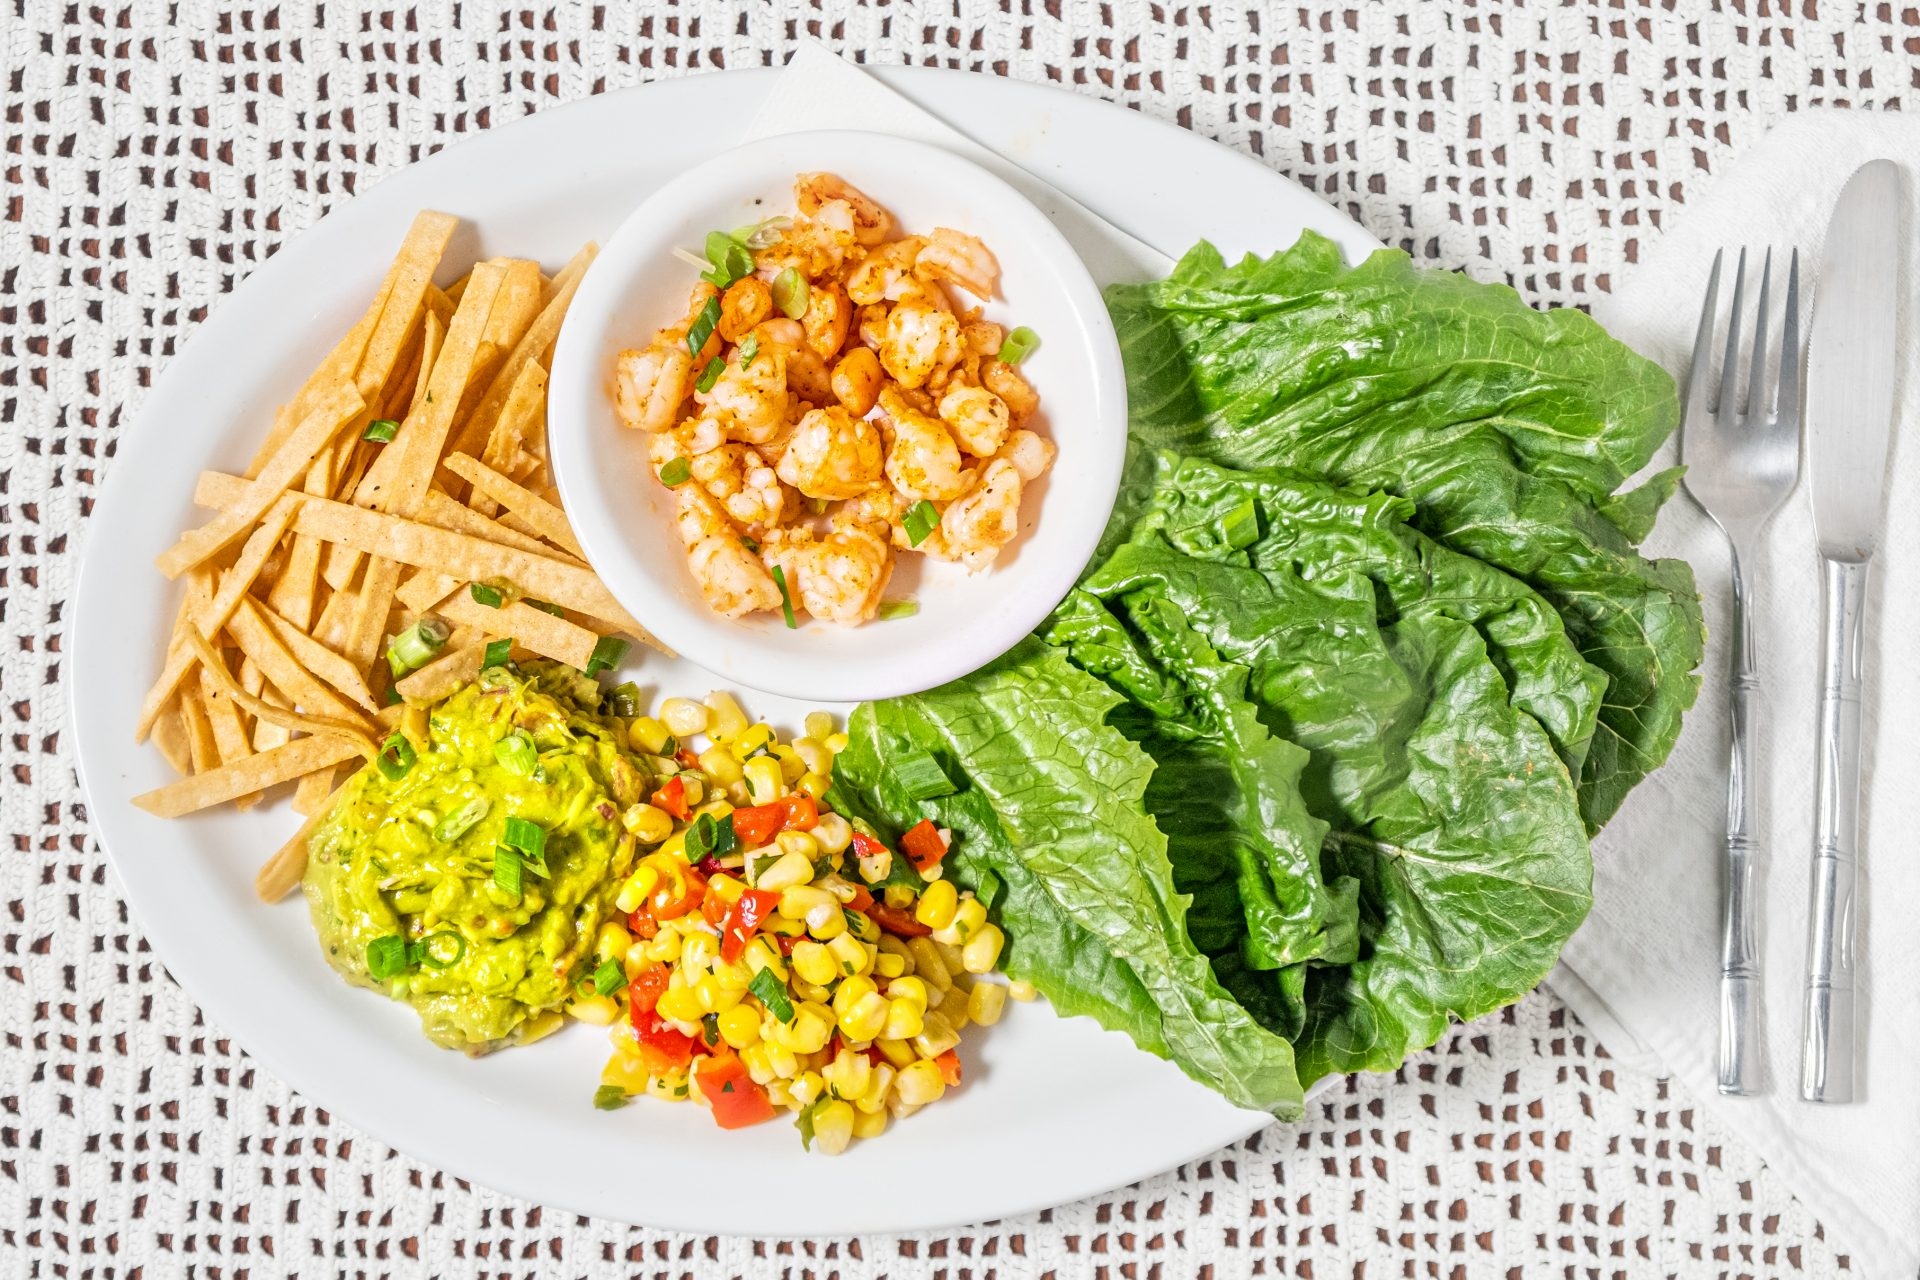 Image of SoCAL Lettuce Wraps - Spicy Chopped Shrimp, Corn Salsa, Guacamole, Roasted Peppers, Corn Tortilla Strips, Romaine Lettuce Wraps